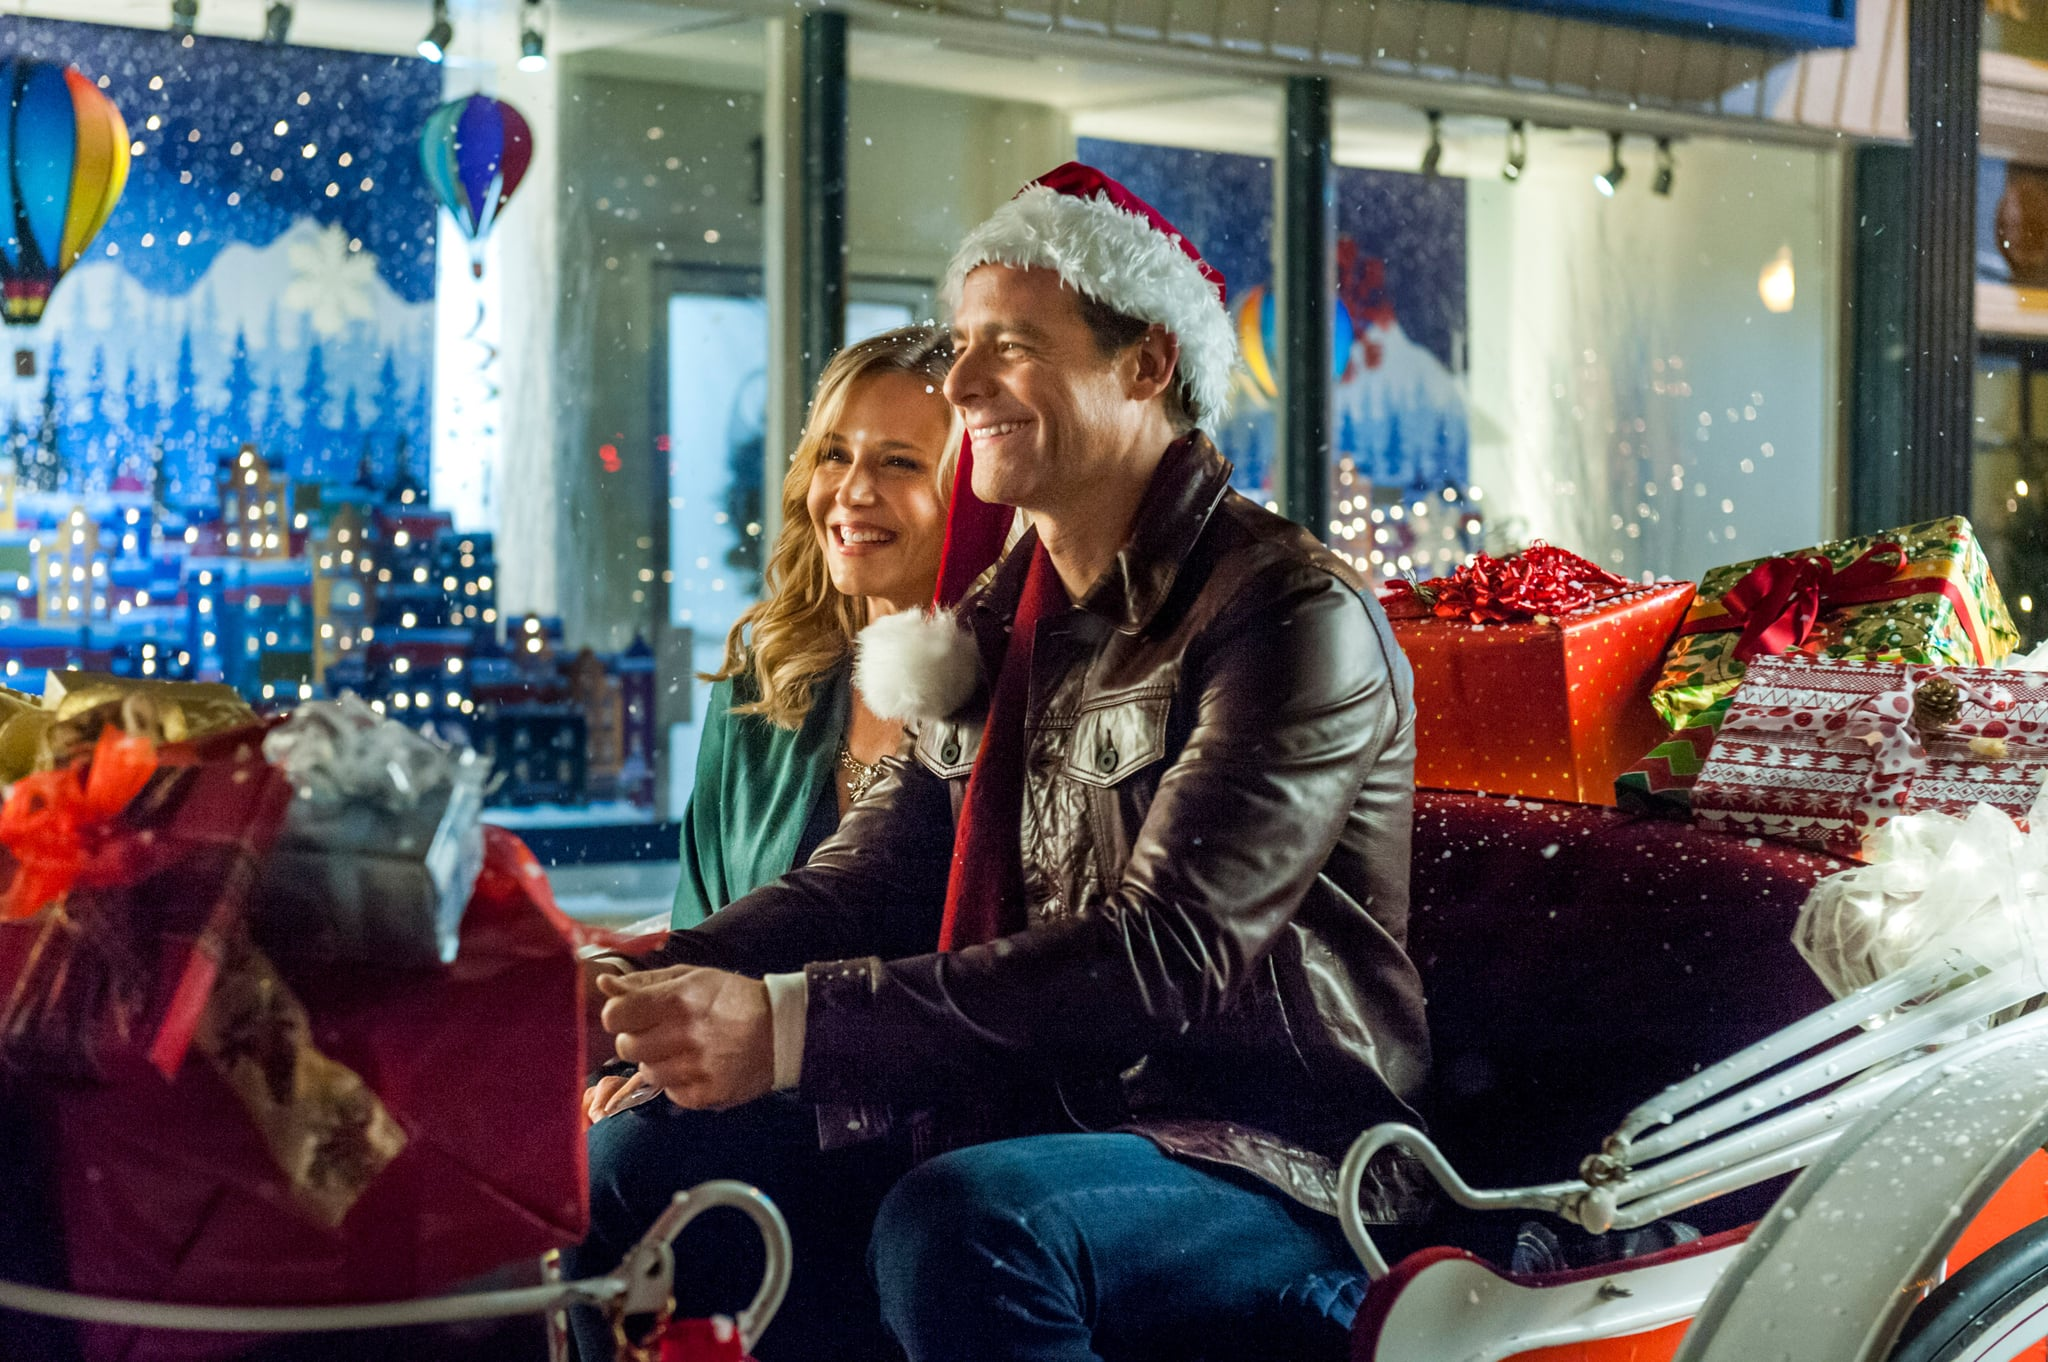 Hallmark Christmas In July 2019.New Hallmark Christmas In July Movies 2019 Popsugar